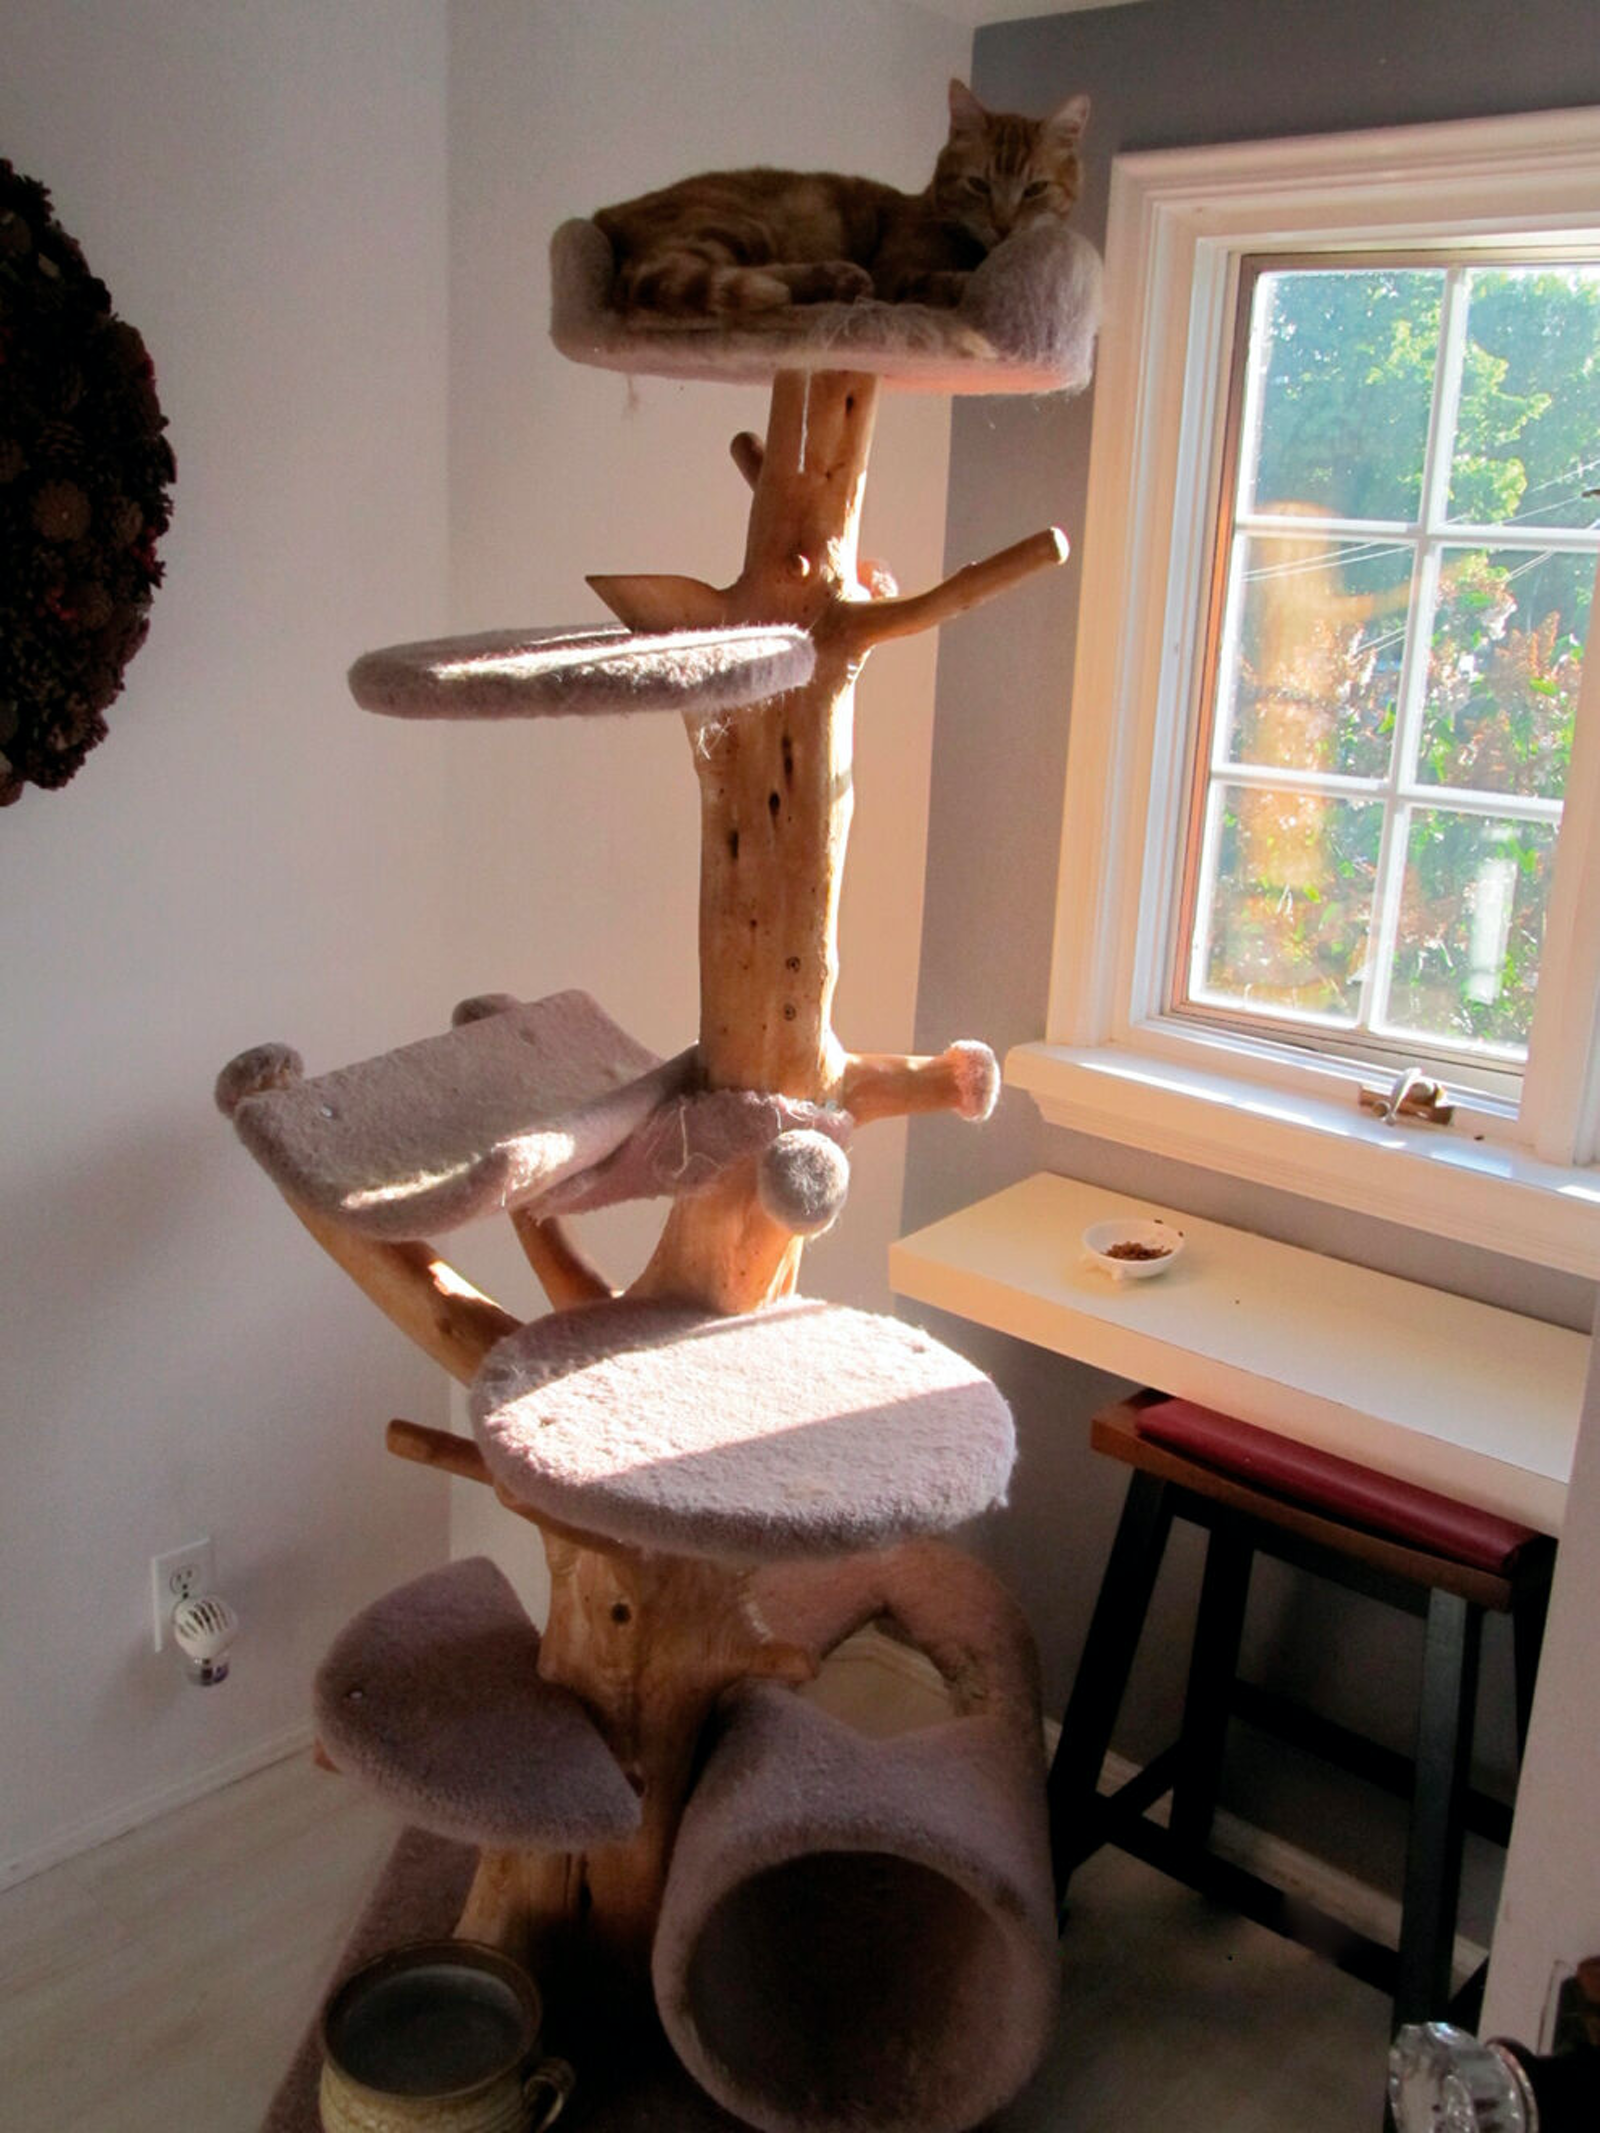 Figure 6. Visual stimulation is important for cats; at least one resting area (e.g., a climbing platform) should allow safe, visual access of the outdoors.